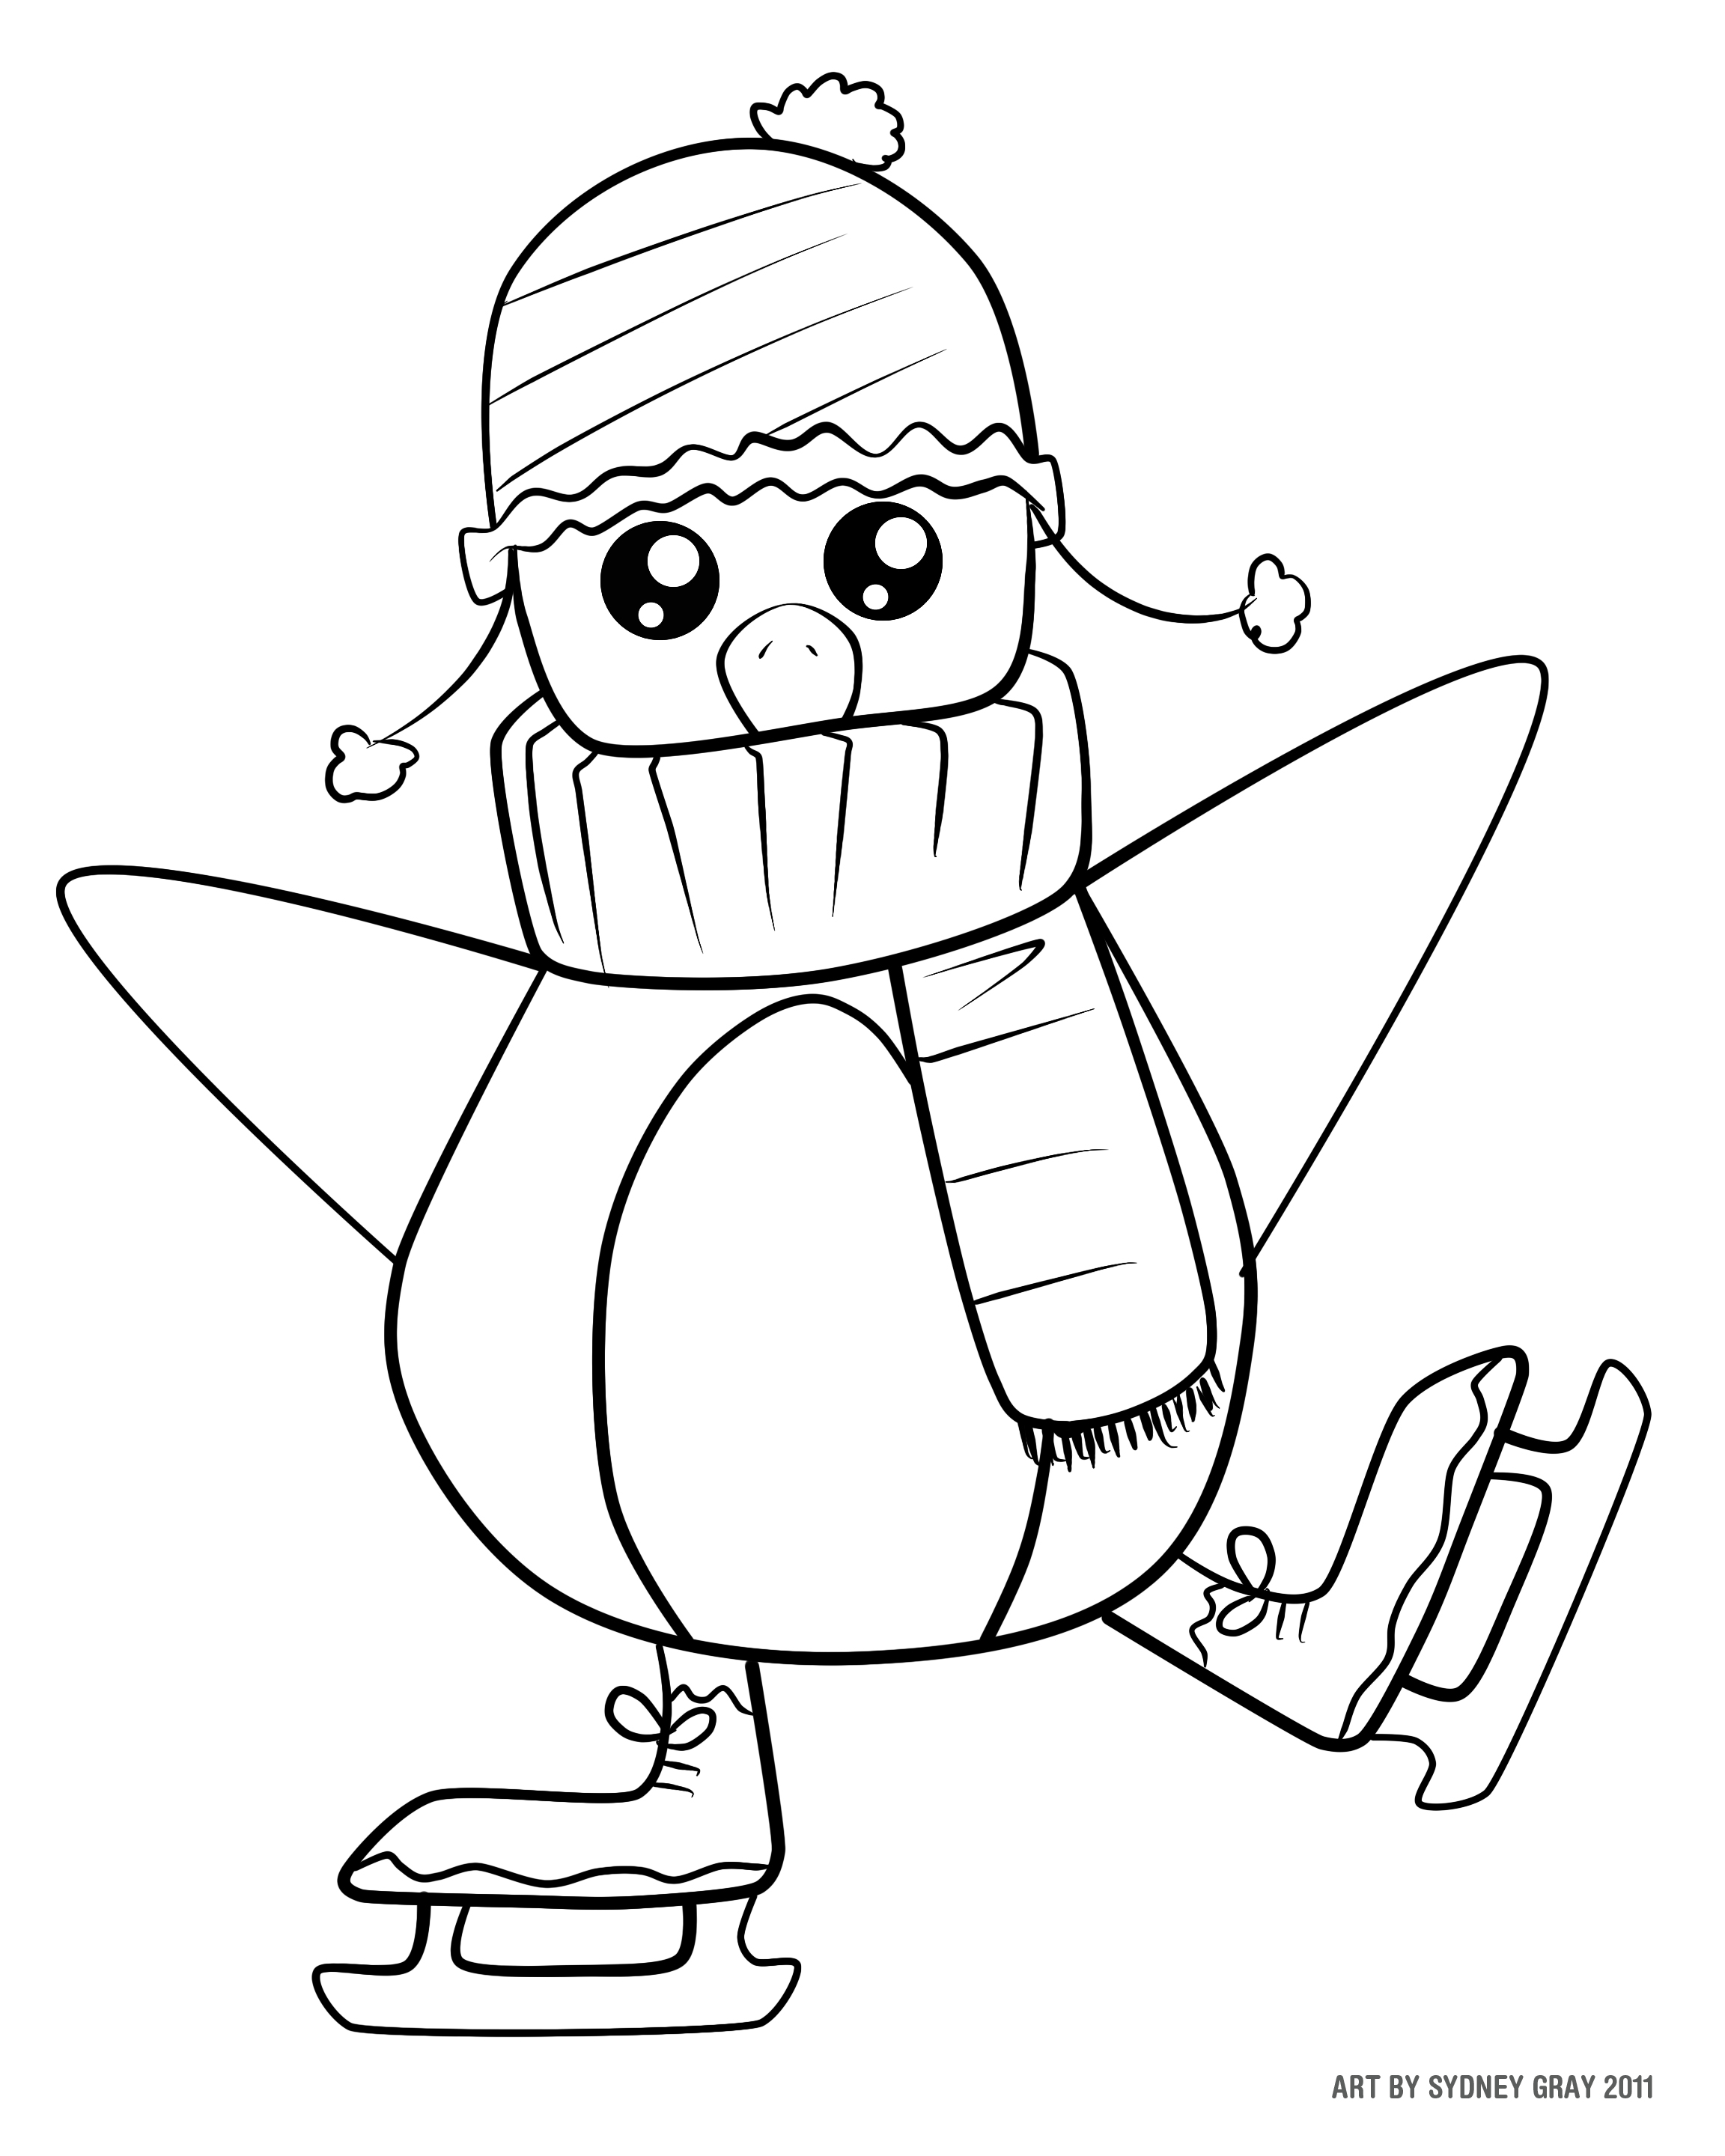 December Coloring Pages To Download And Print For Free December Coloring Pages